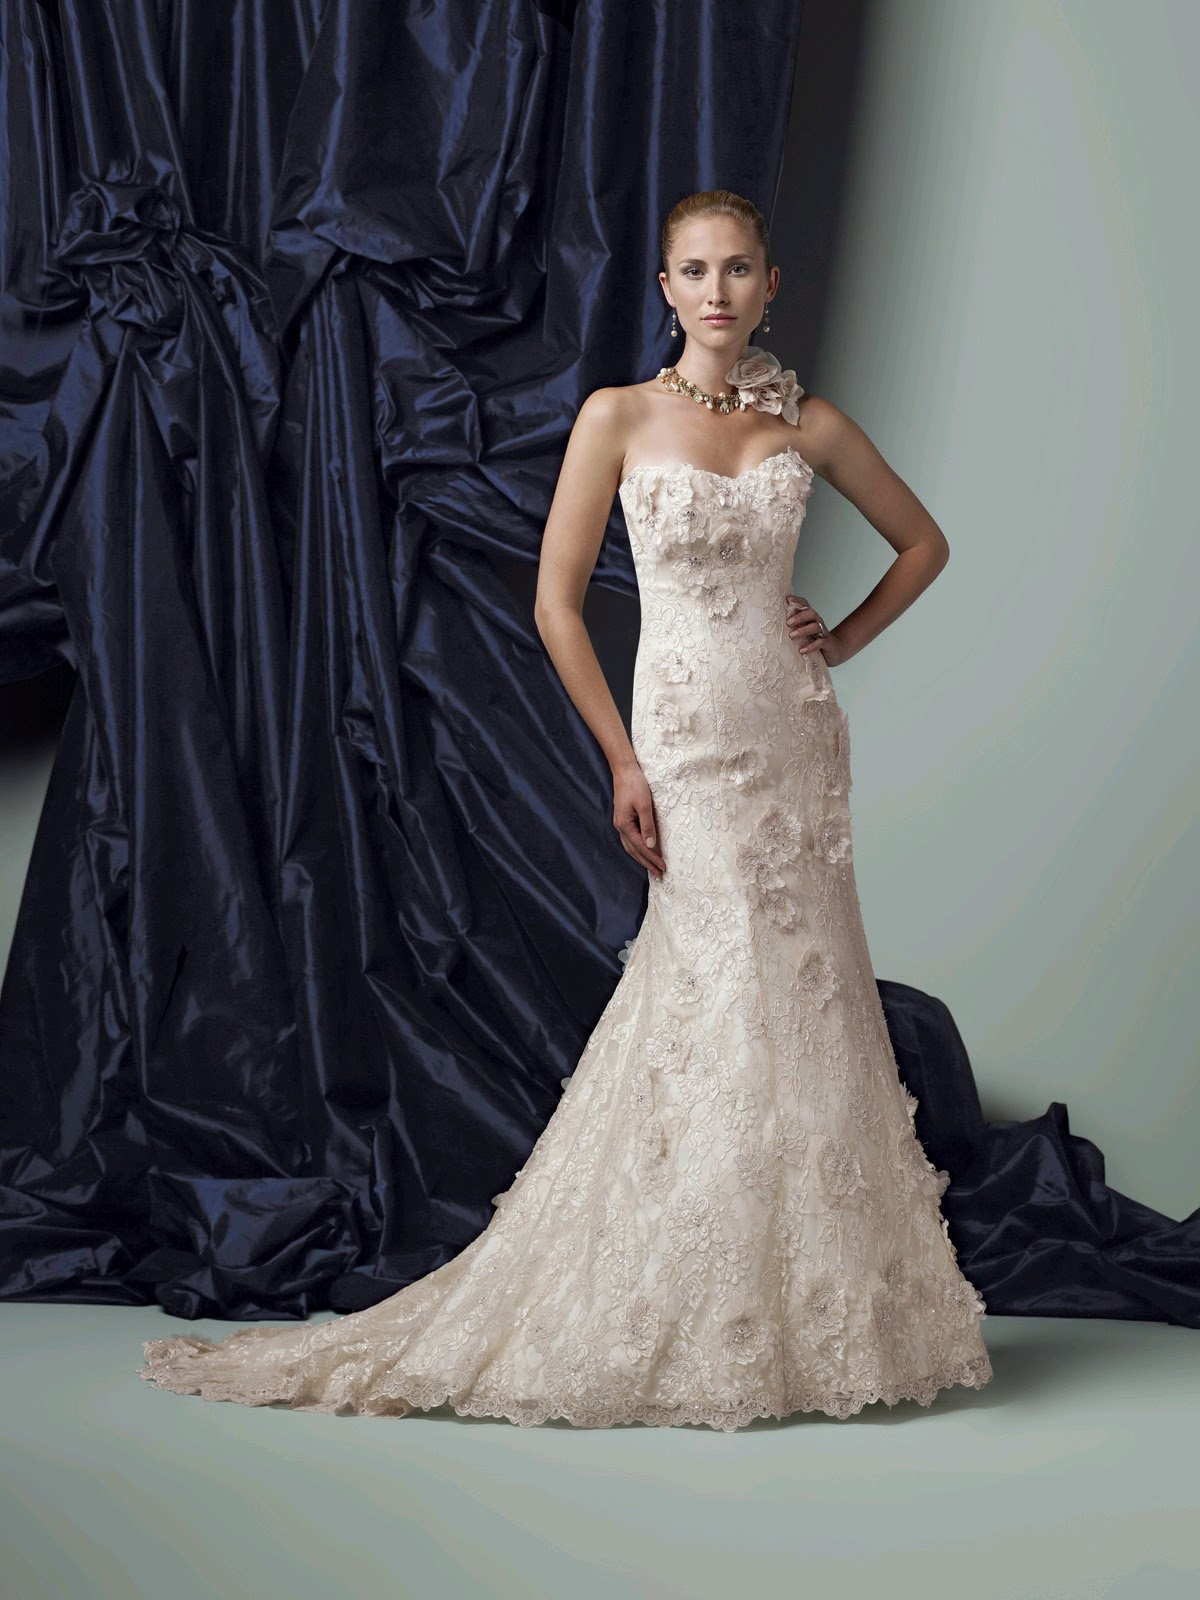 Affordable Wedding Dresses in NYC, Wedding Dress New York, Wedding Dress New York City, Bridal Consignment Shops NYC, Discount Bridal New York City, Wholesale Wedding Dresses in NYC, Wedding Gowns NYC Fashion District